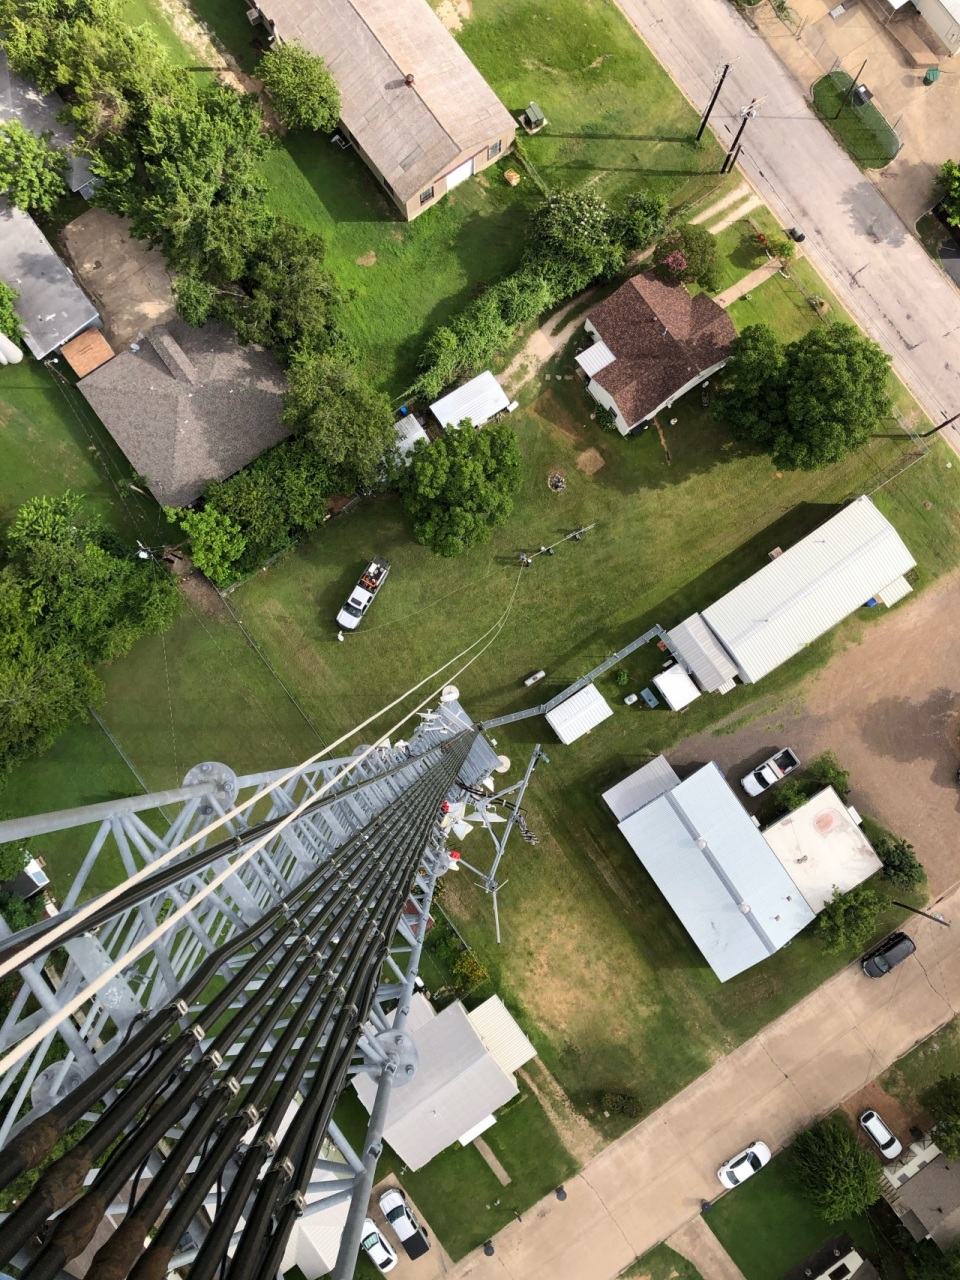 View of Skyline Communications from the top of their structure